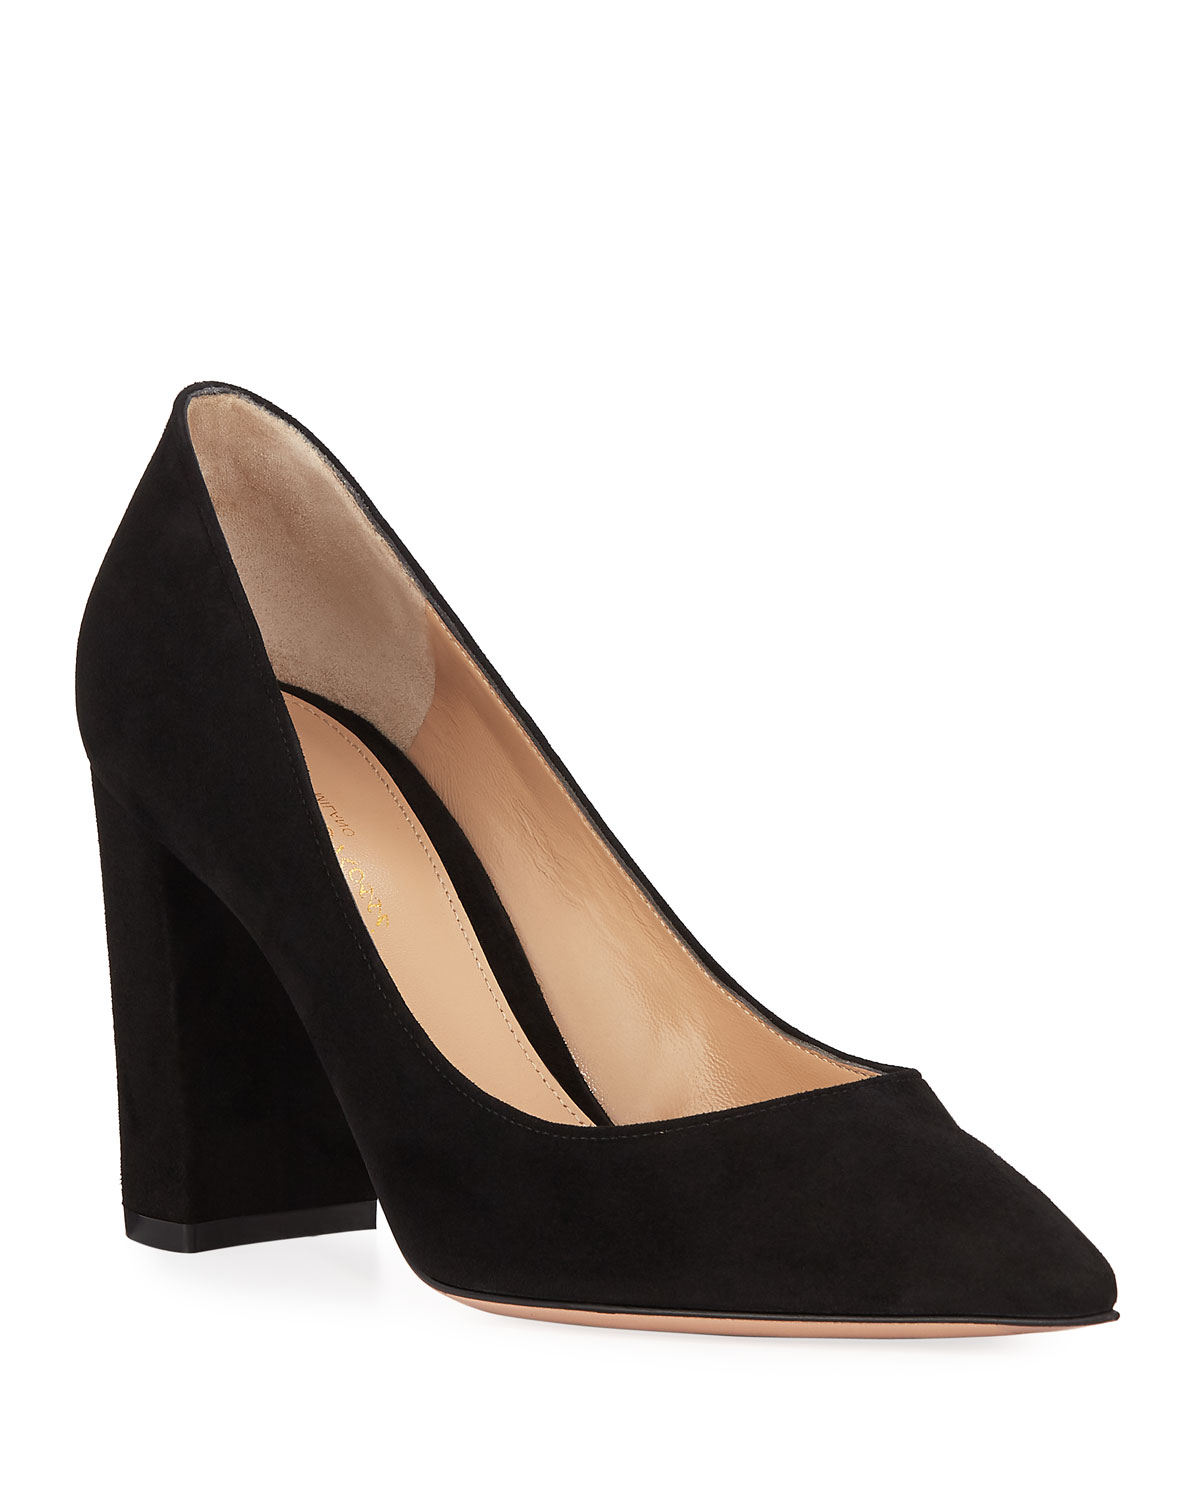 39f81b213e6 Suede Pointed-Toe Pumps with Chunky Heel